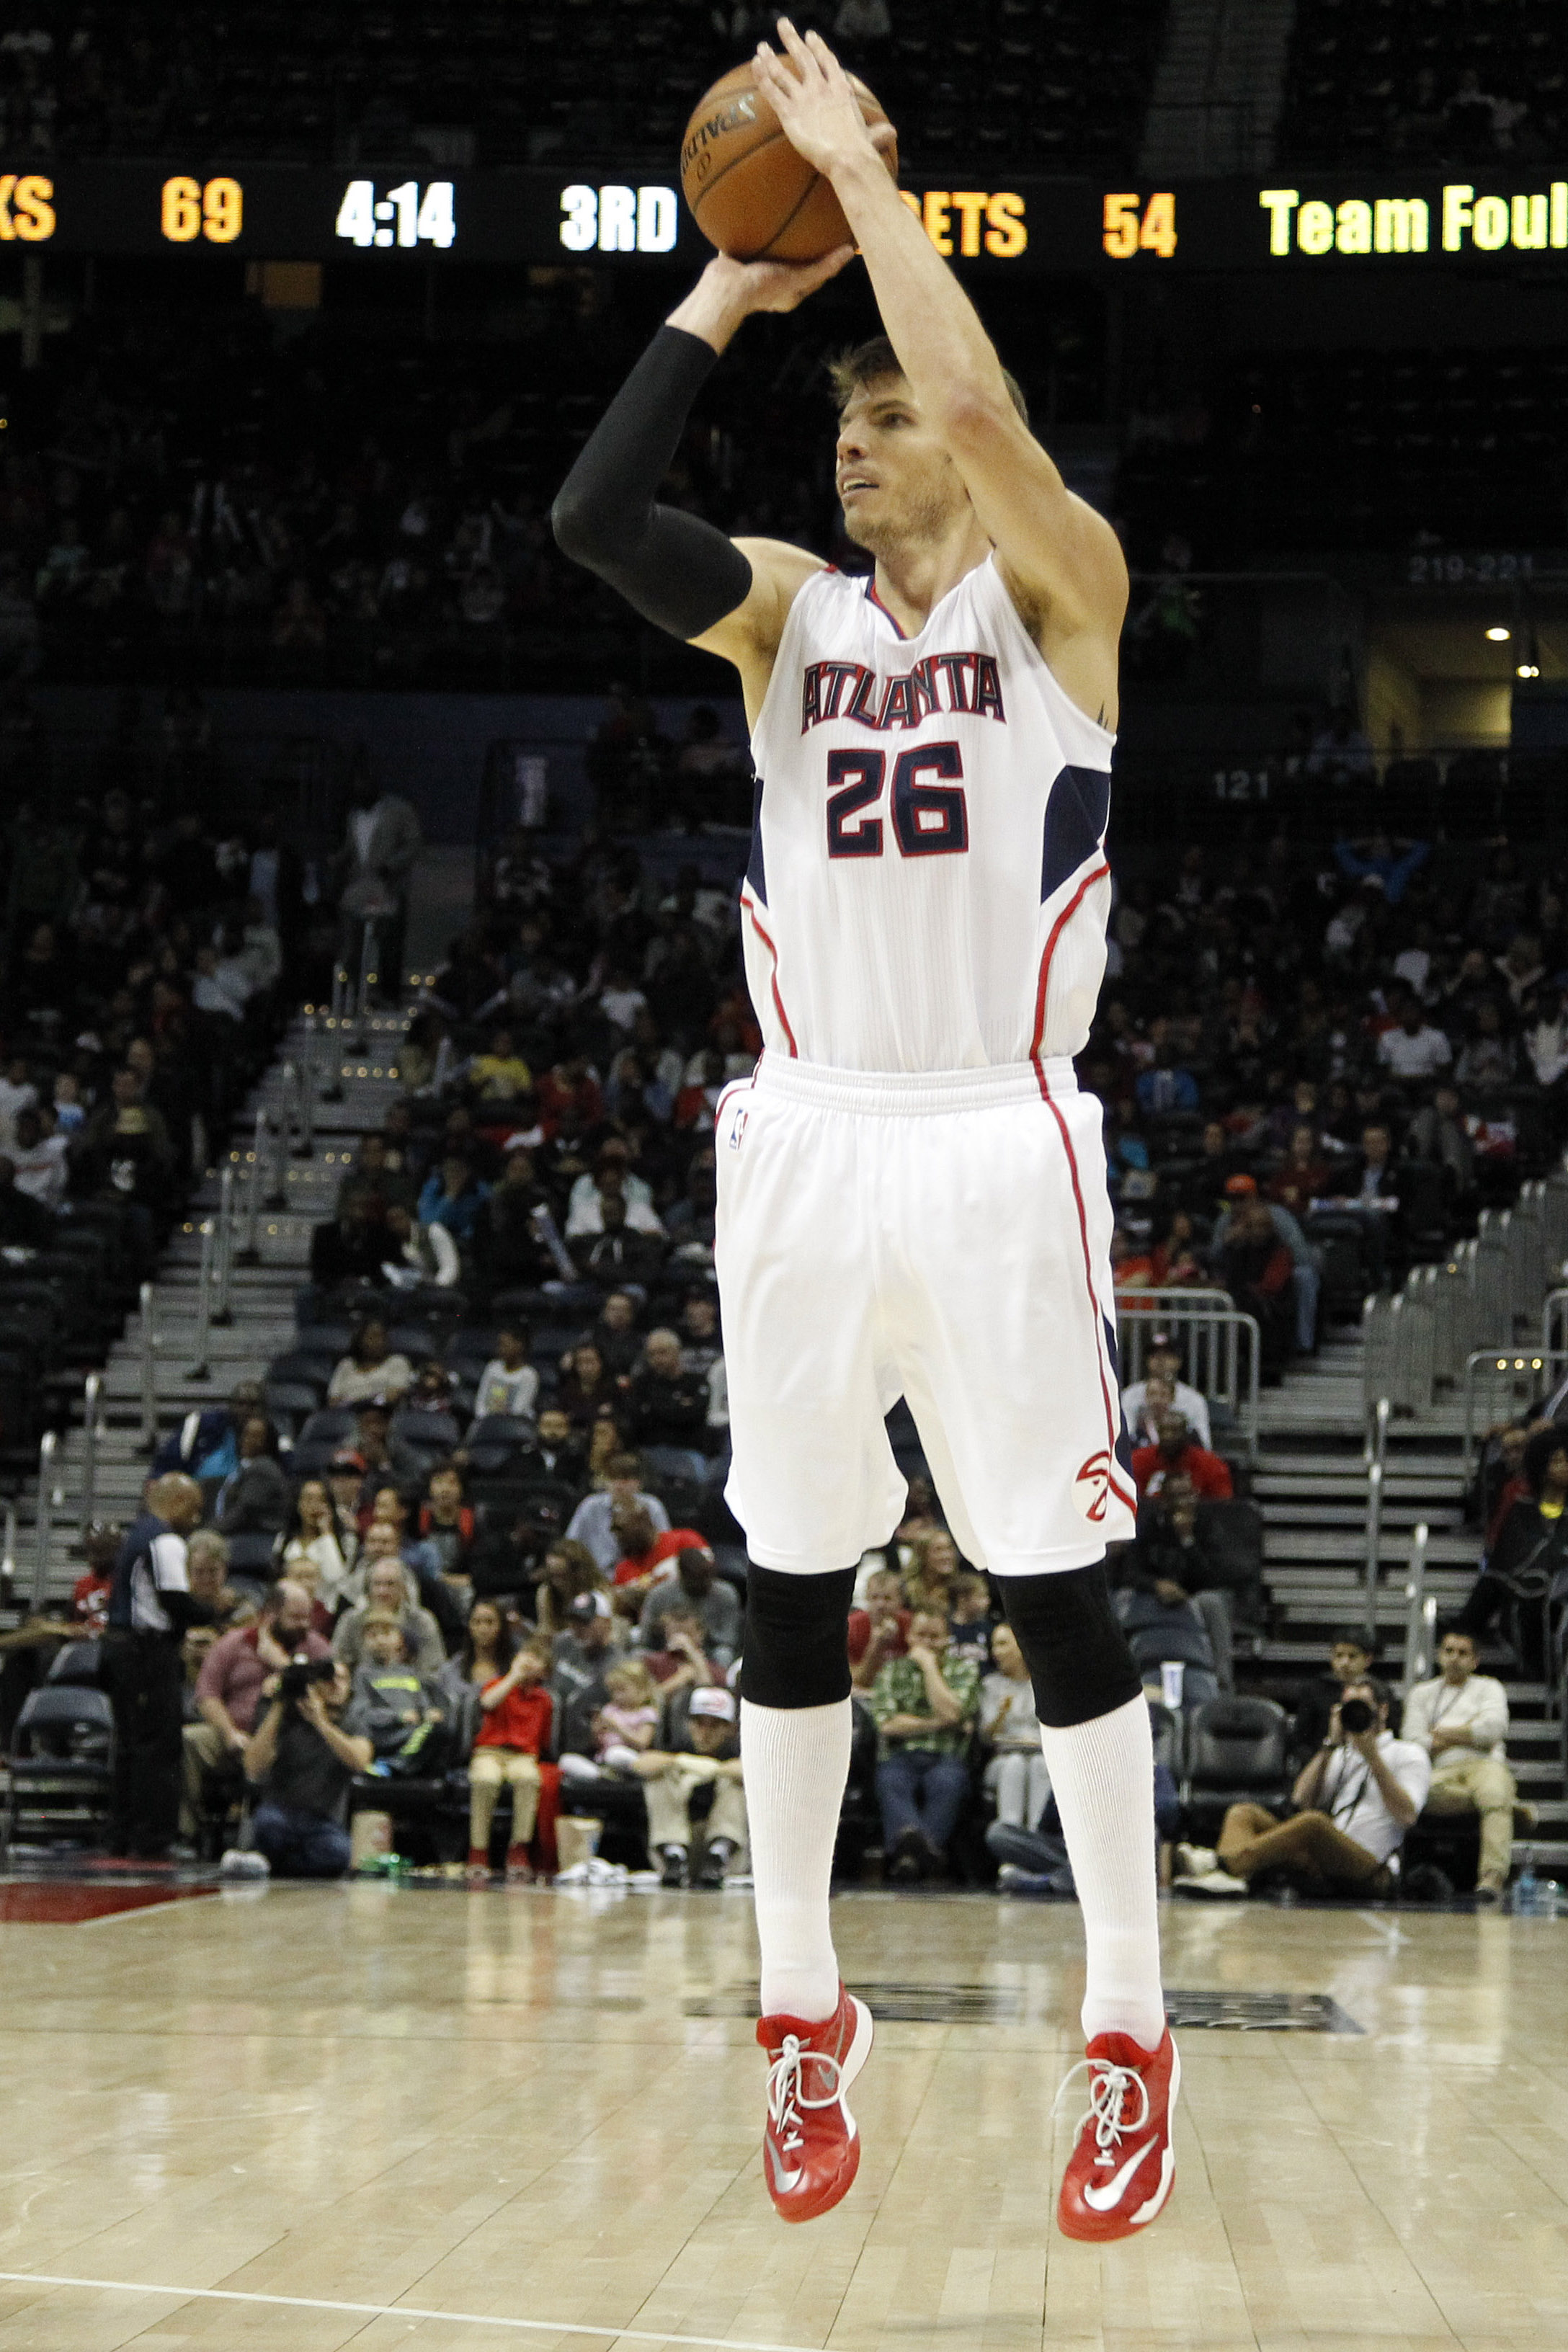 Kyle Korver is on fire, and so are the Atlanta Hawks